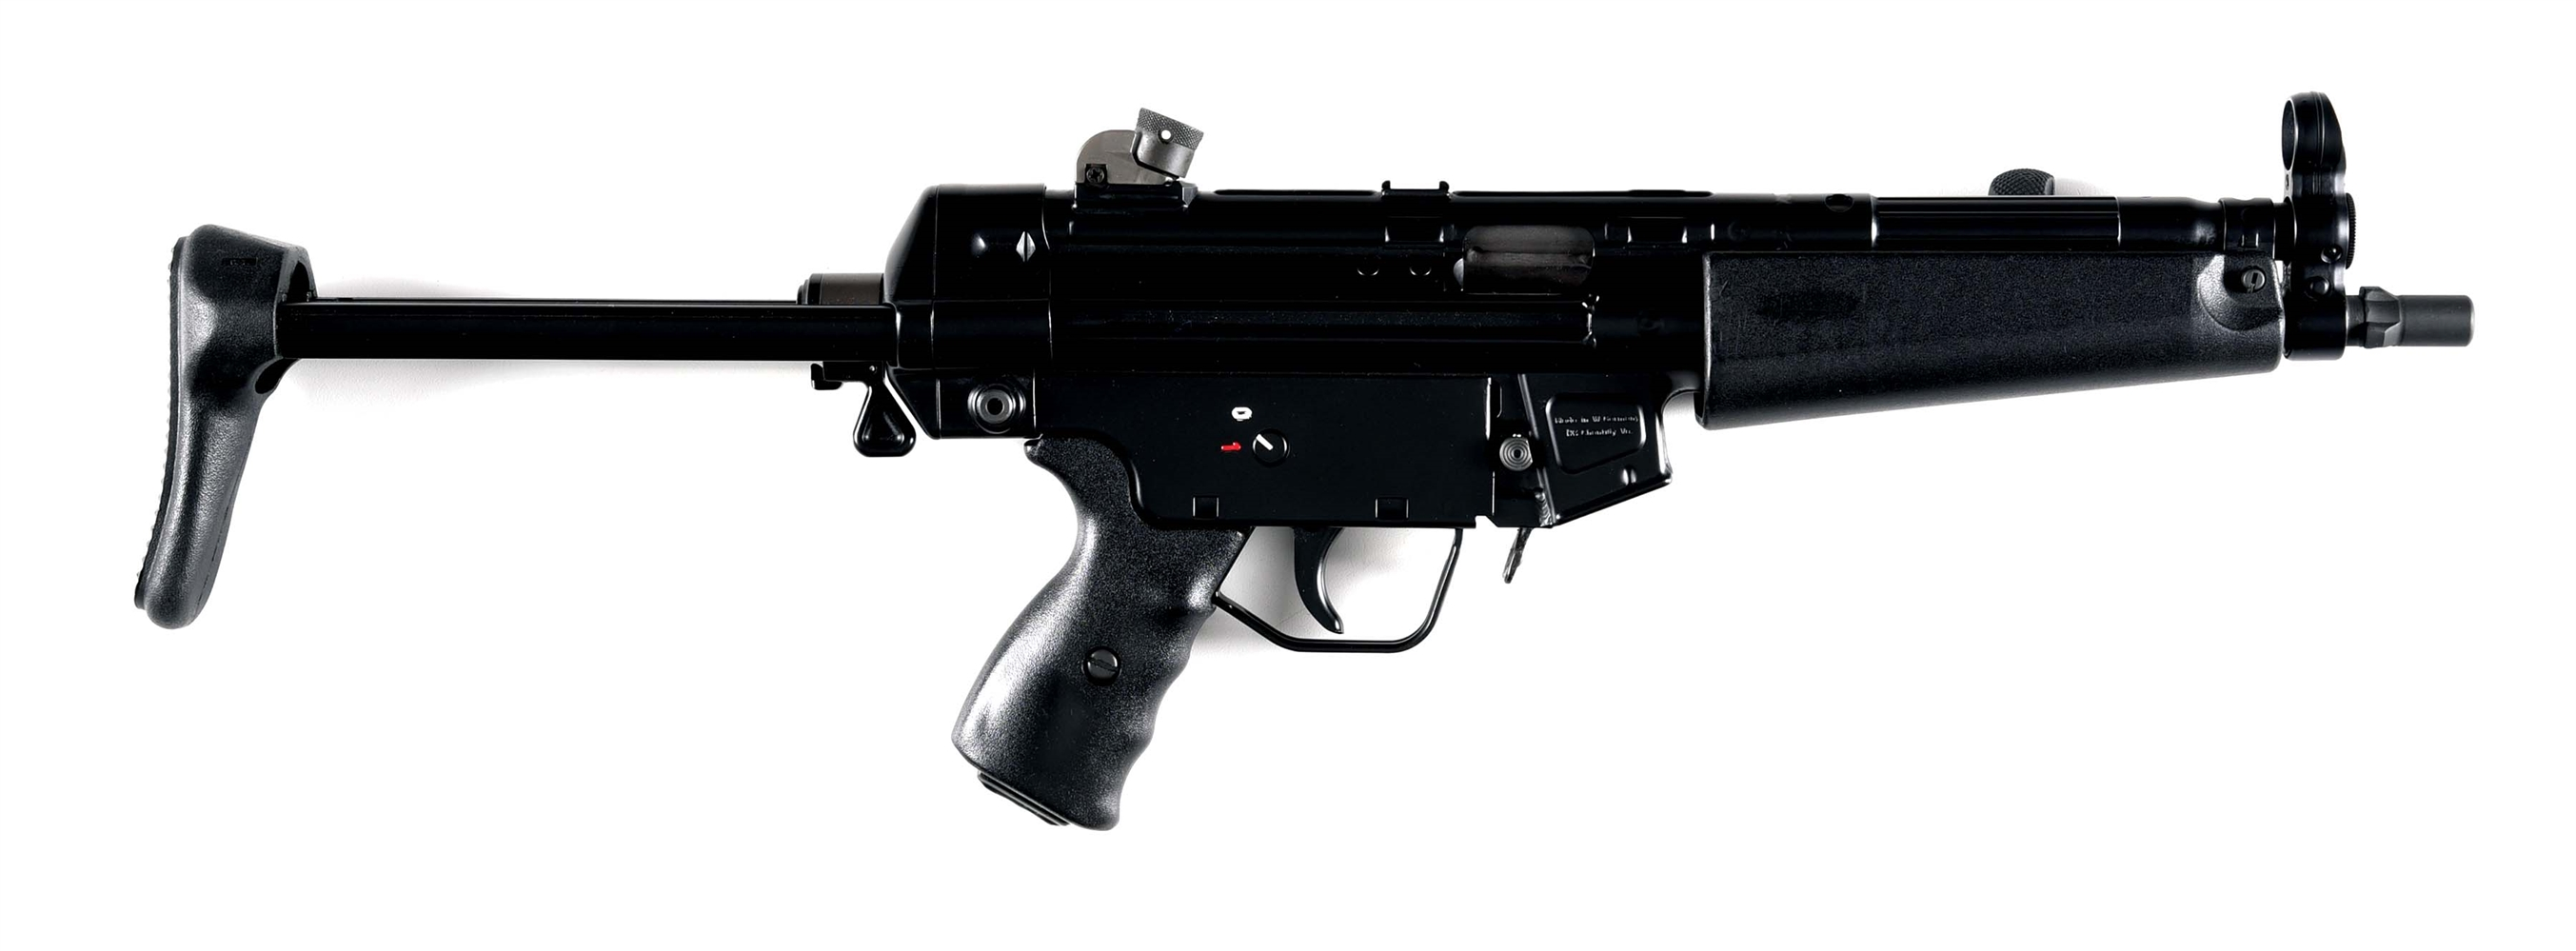 (N) CJM MACHINE SHORT BARRELED RIFLE HK MP5 CONVERTED FROM AN HK94 SEMI-AUTOMATIC RIFLE (SHORT BARRELED RIFLE).